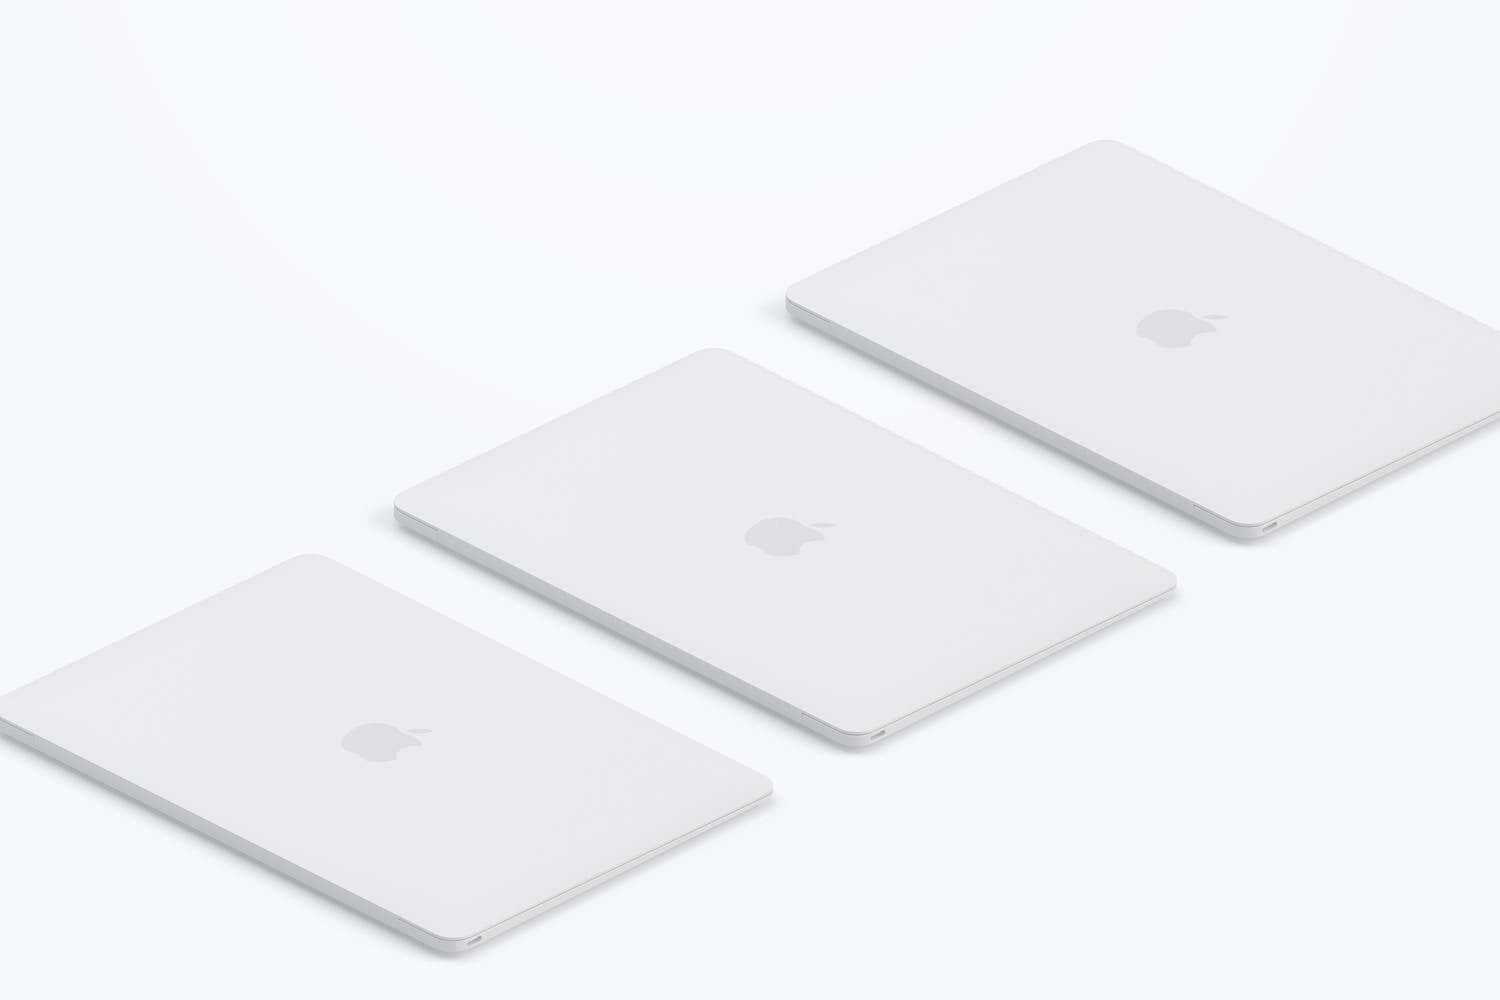 Clay MacBook Mockup, Isometric Right View 03 (3) by Original Mockups on Original Mockups